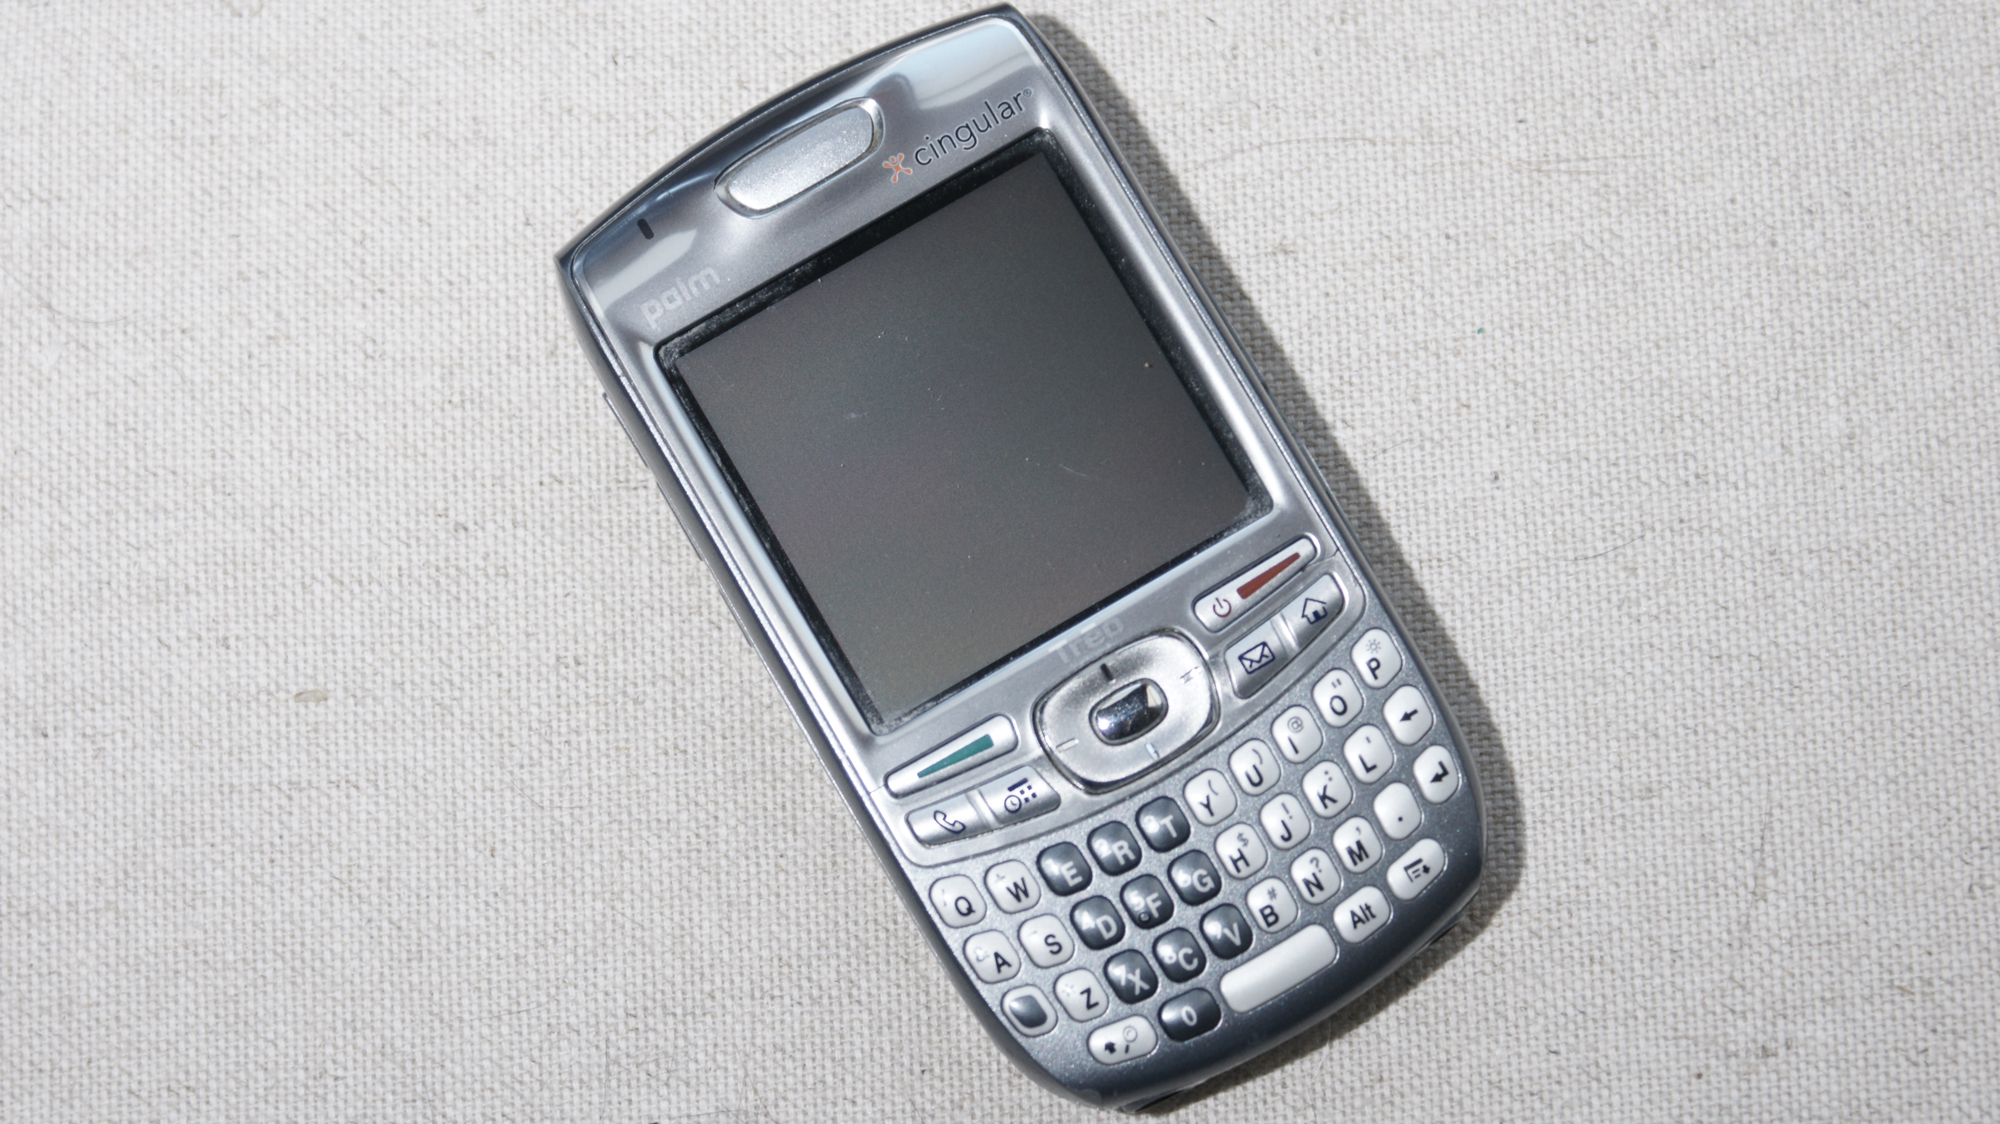 The Palm Brand is Coming Back. Maybe